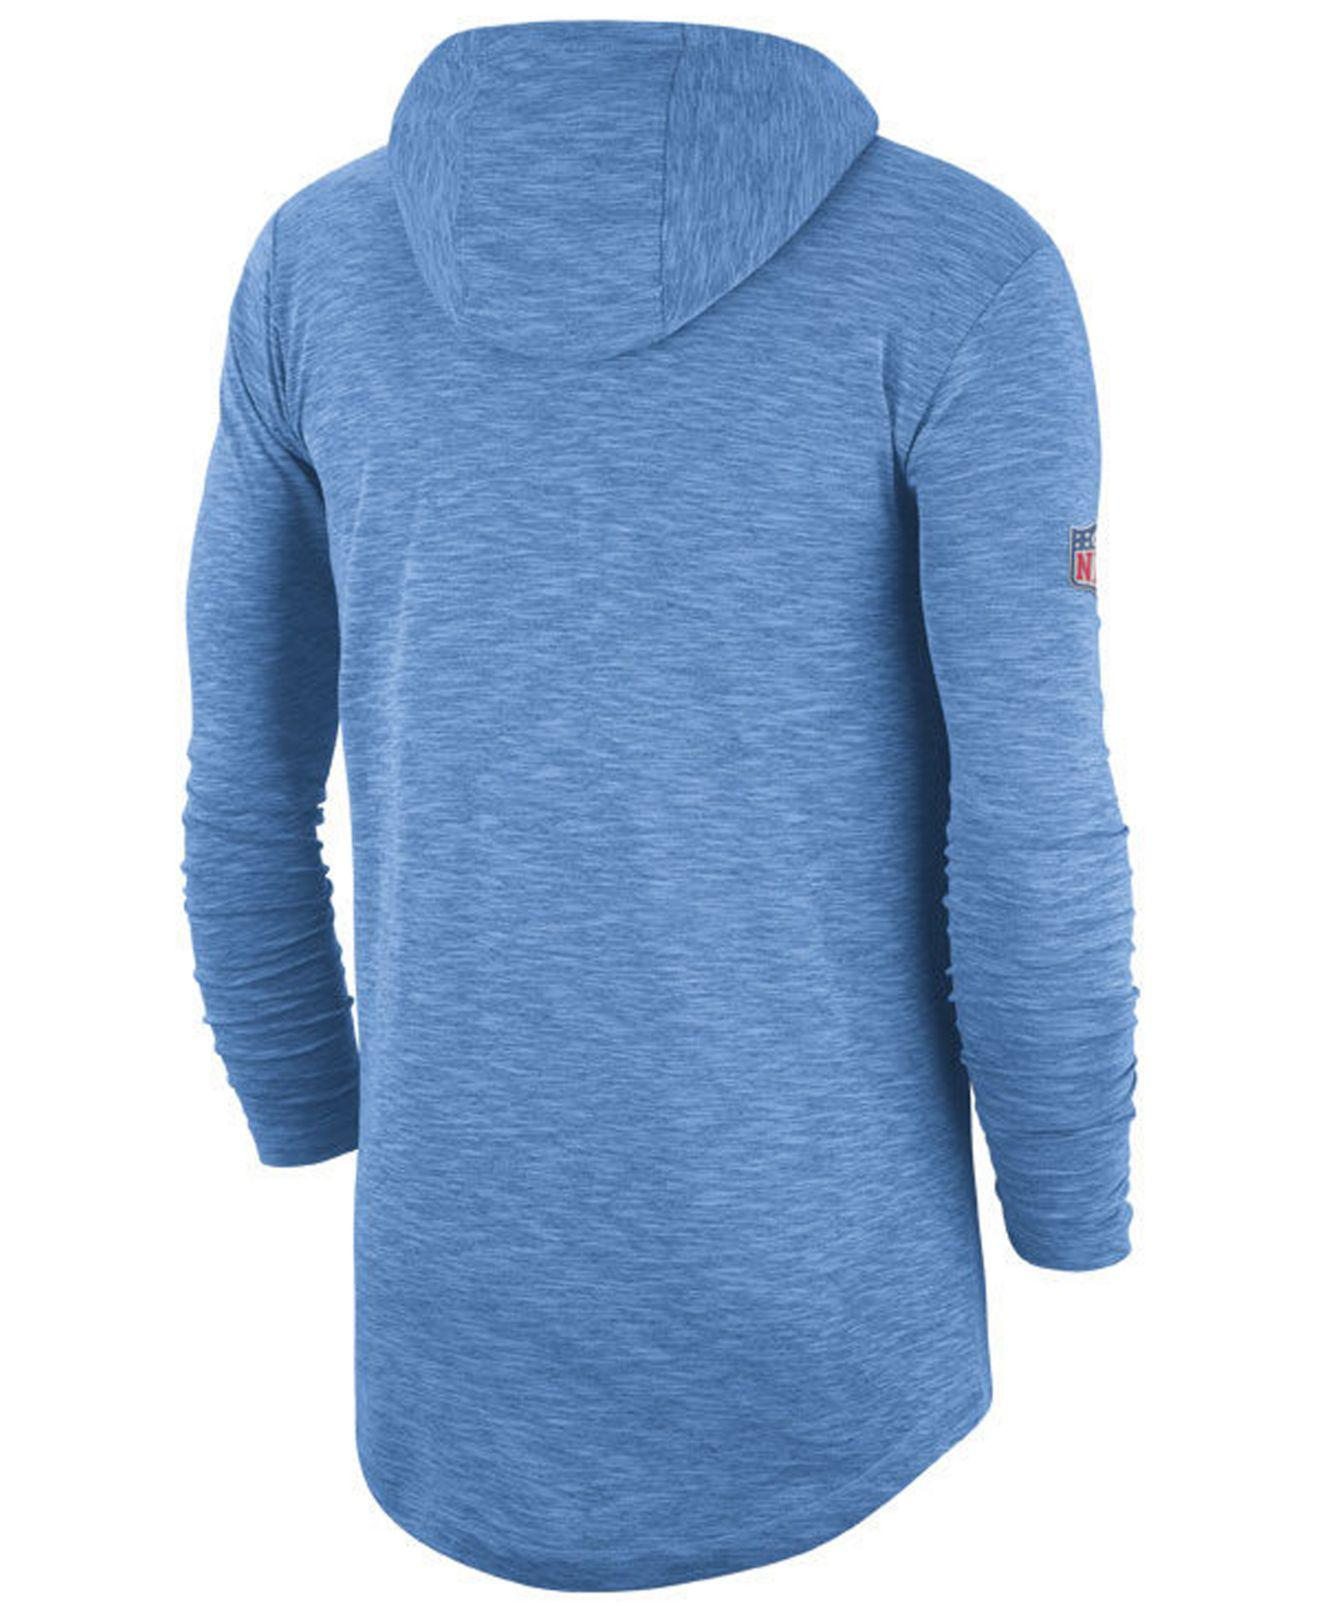 a07831cde Lyst - Nike Tennessee Titans Dri-fit Cotton Slub On-field Hooded T-shirt in  Blue for Men